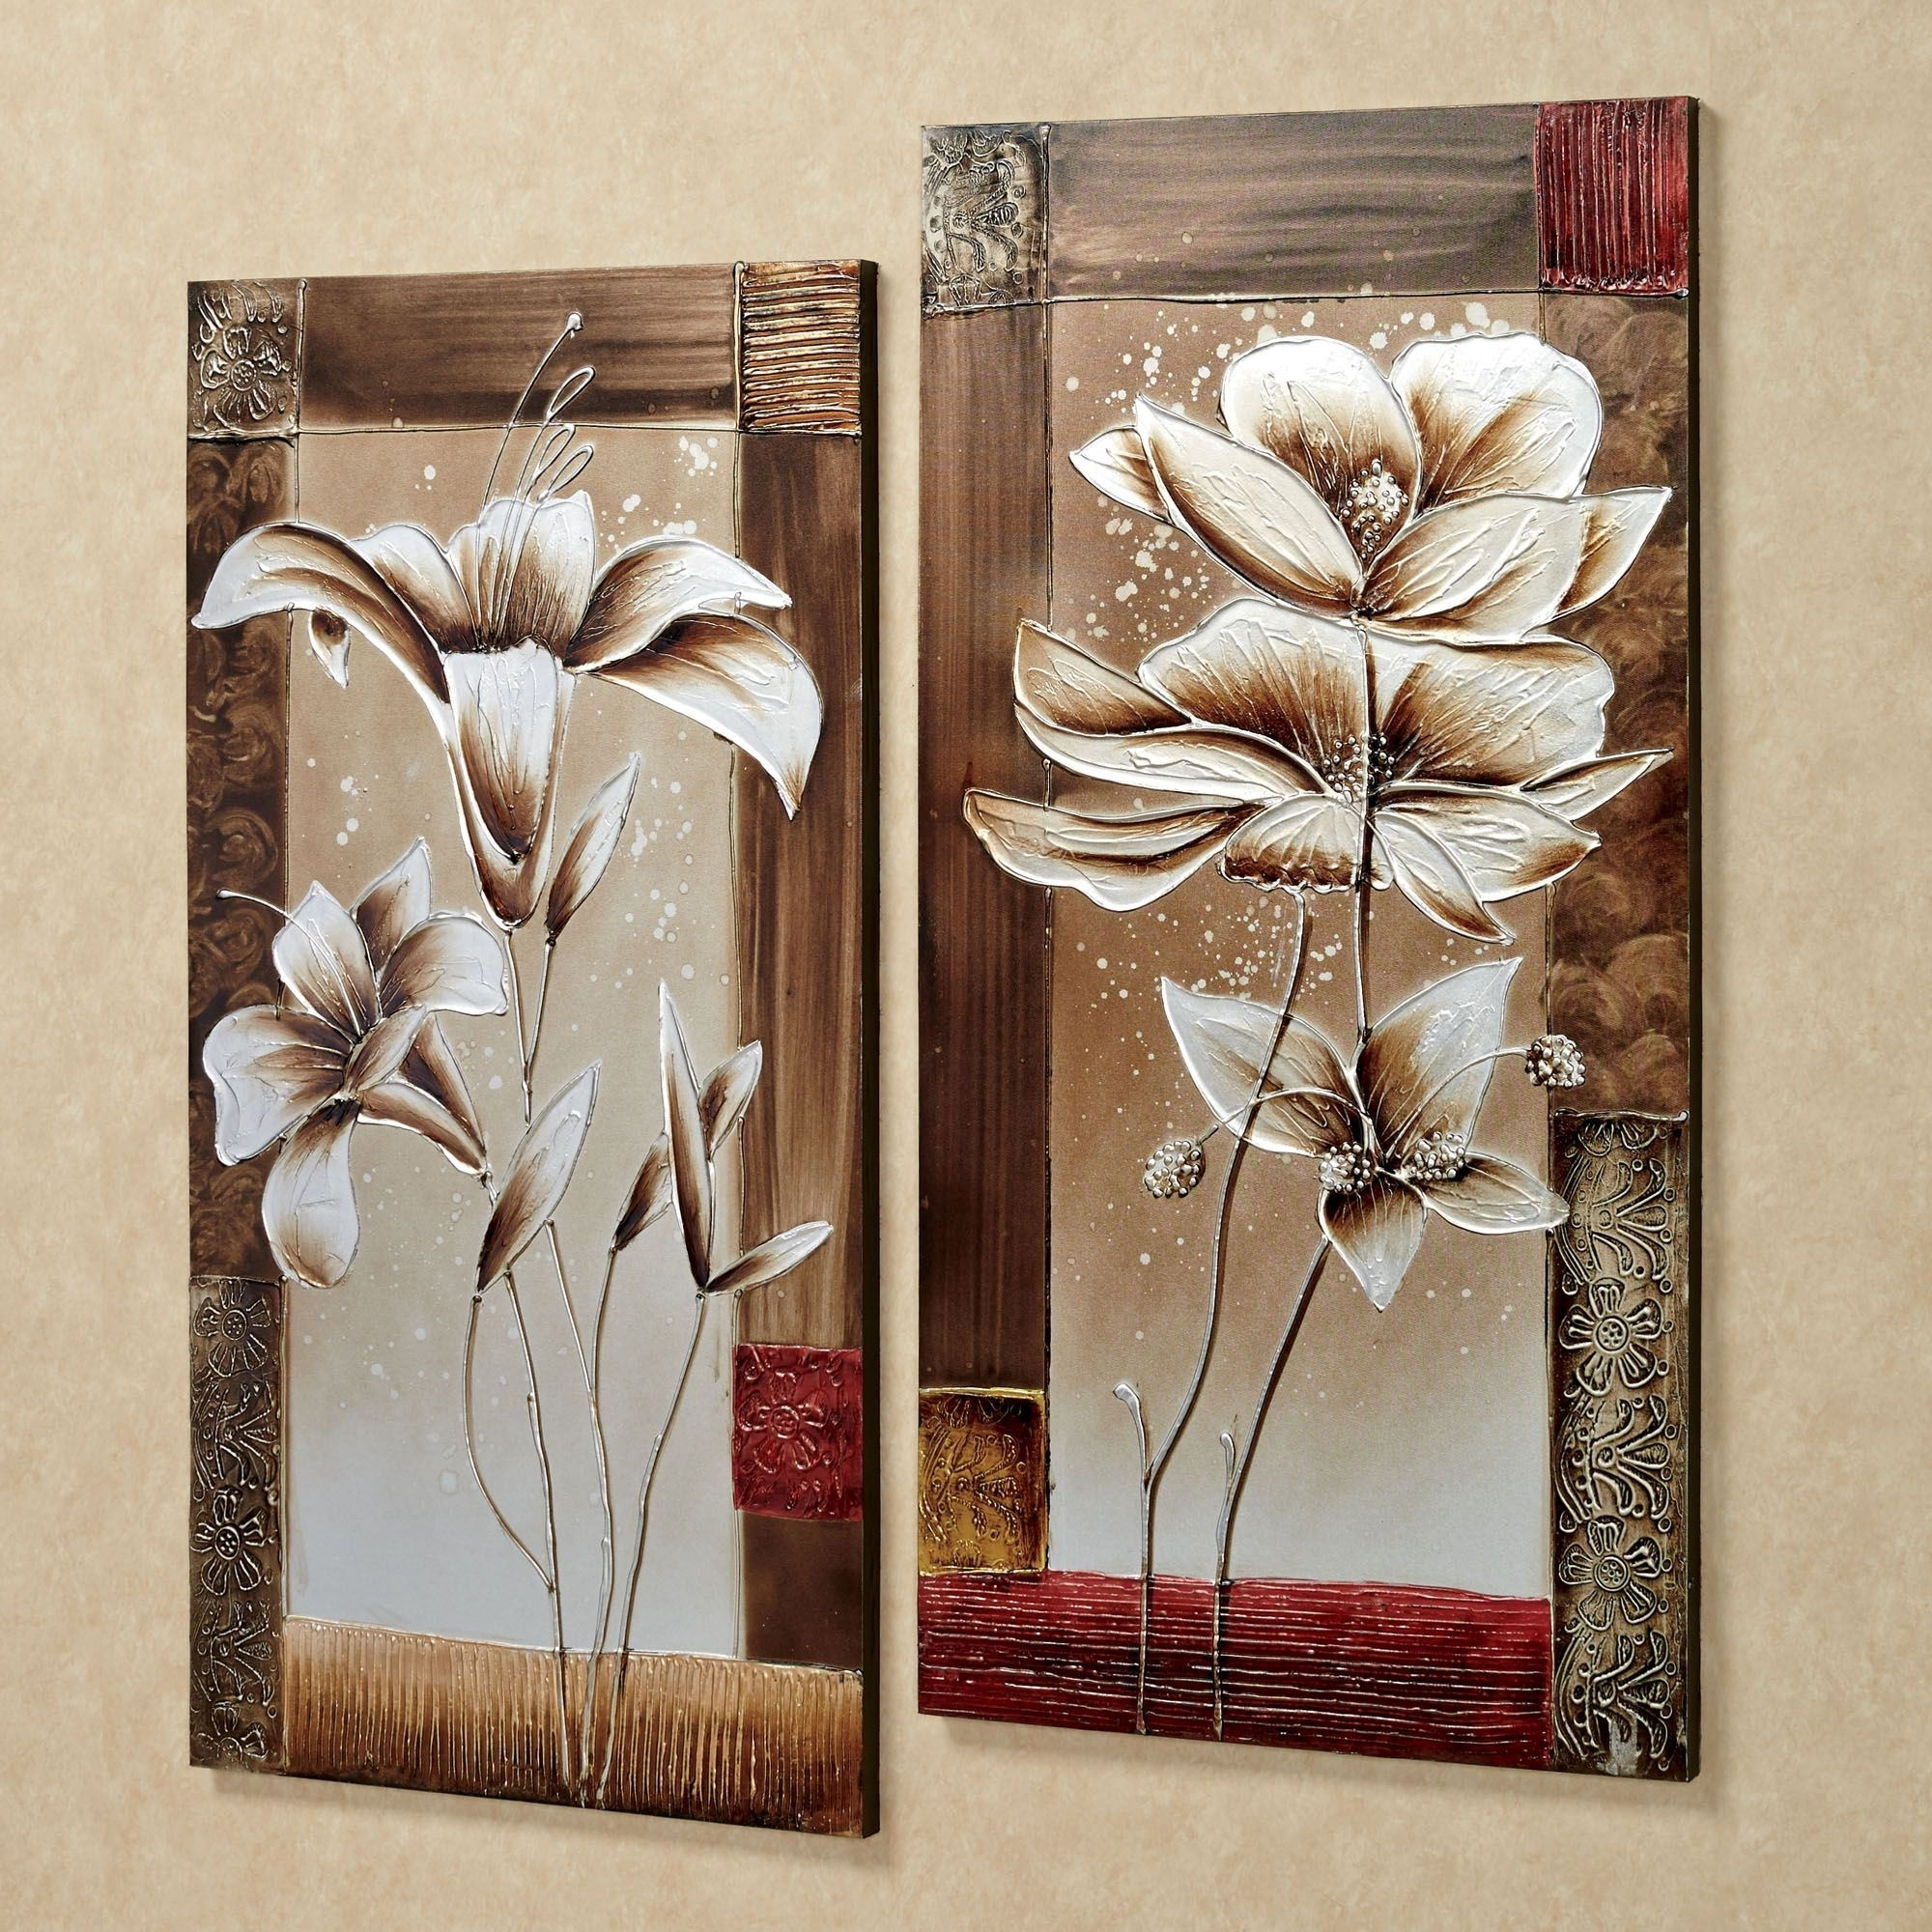 Petals Of Spring Floral Canvas Wall Art Set Regarding Most Recent Canvas Wall Art Of Flowers (View 4 of 15)